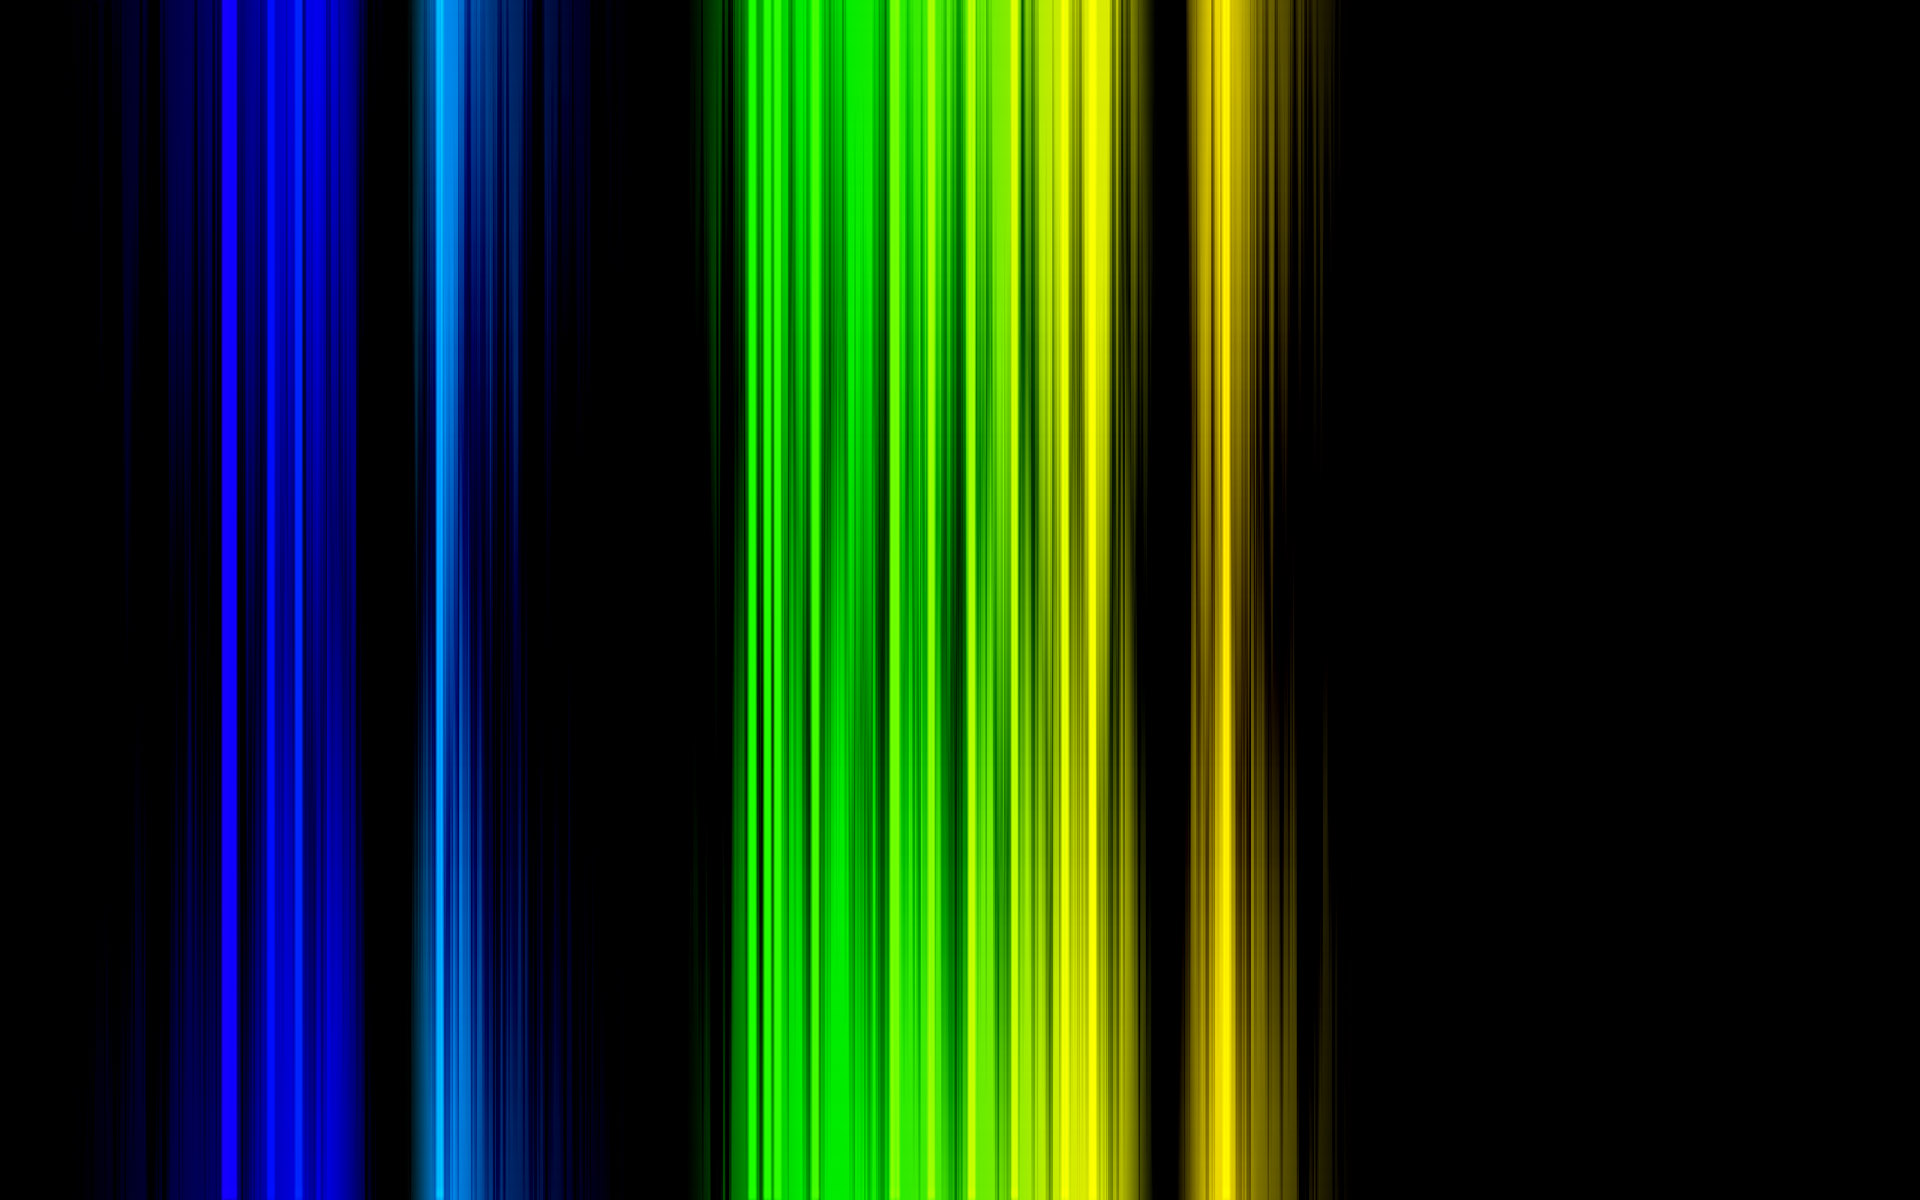 Colorful high-resolution background 25250